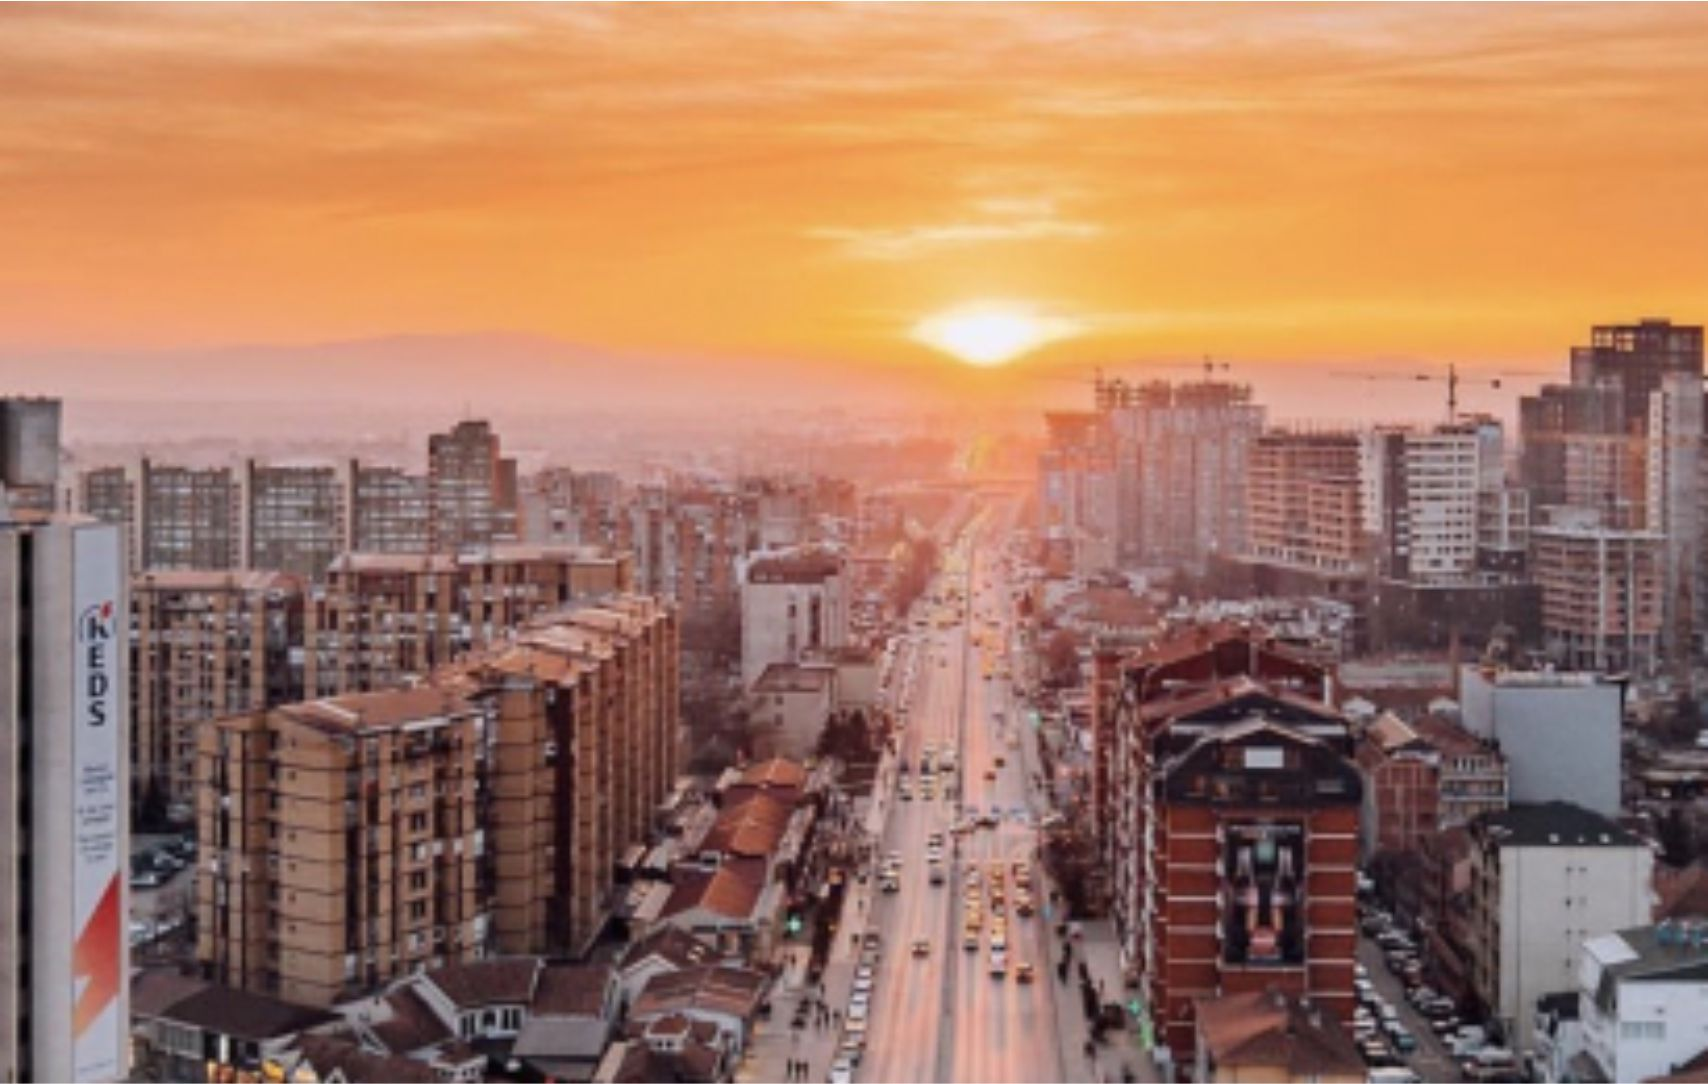 Wennberg International Collaborative (WIC) radionica